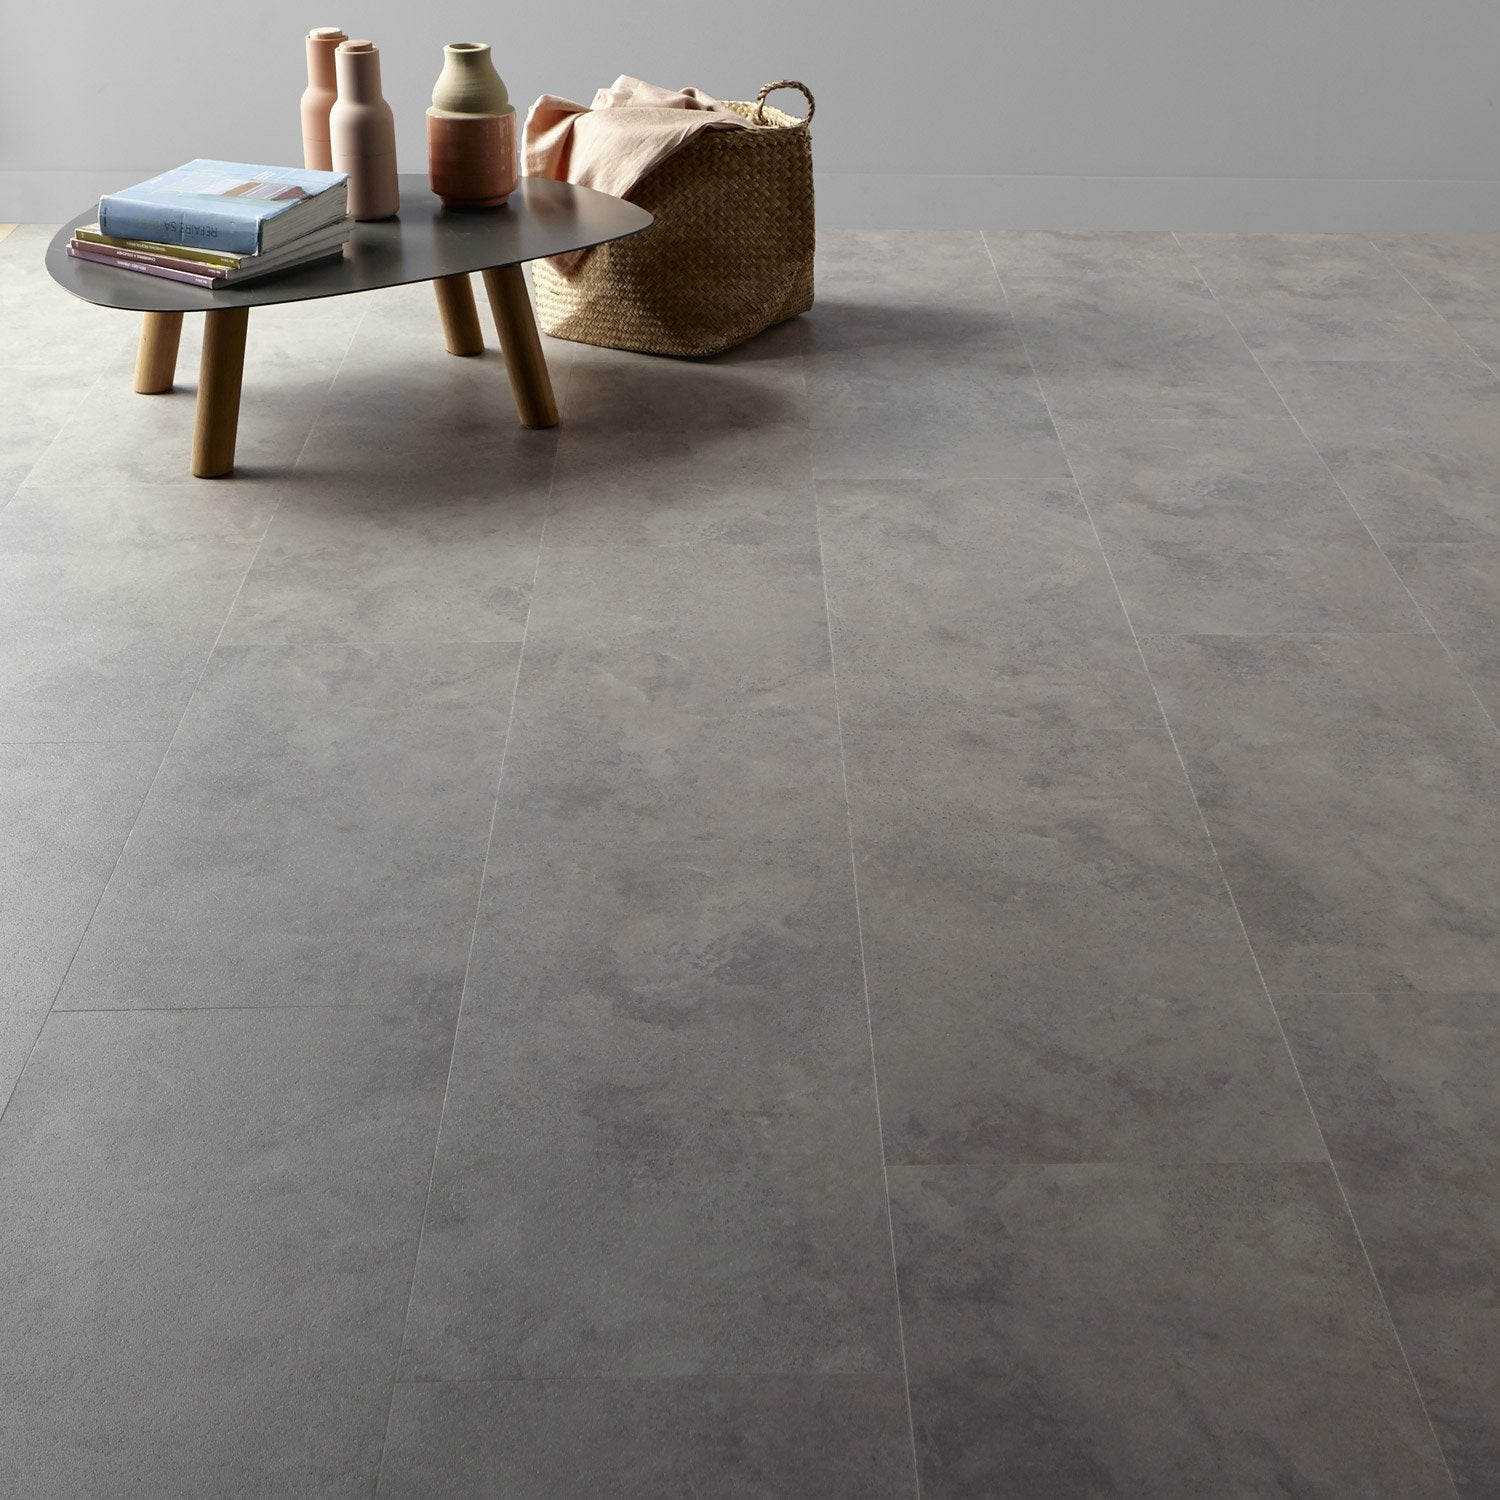 dalle pvc clipsable taupe flagstone senso lock gerflor